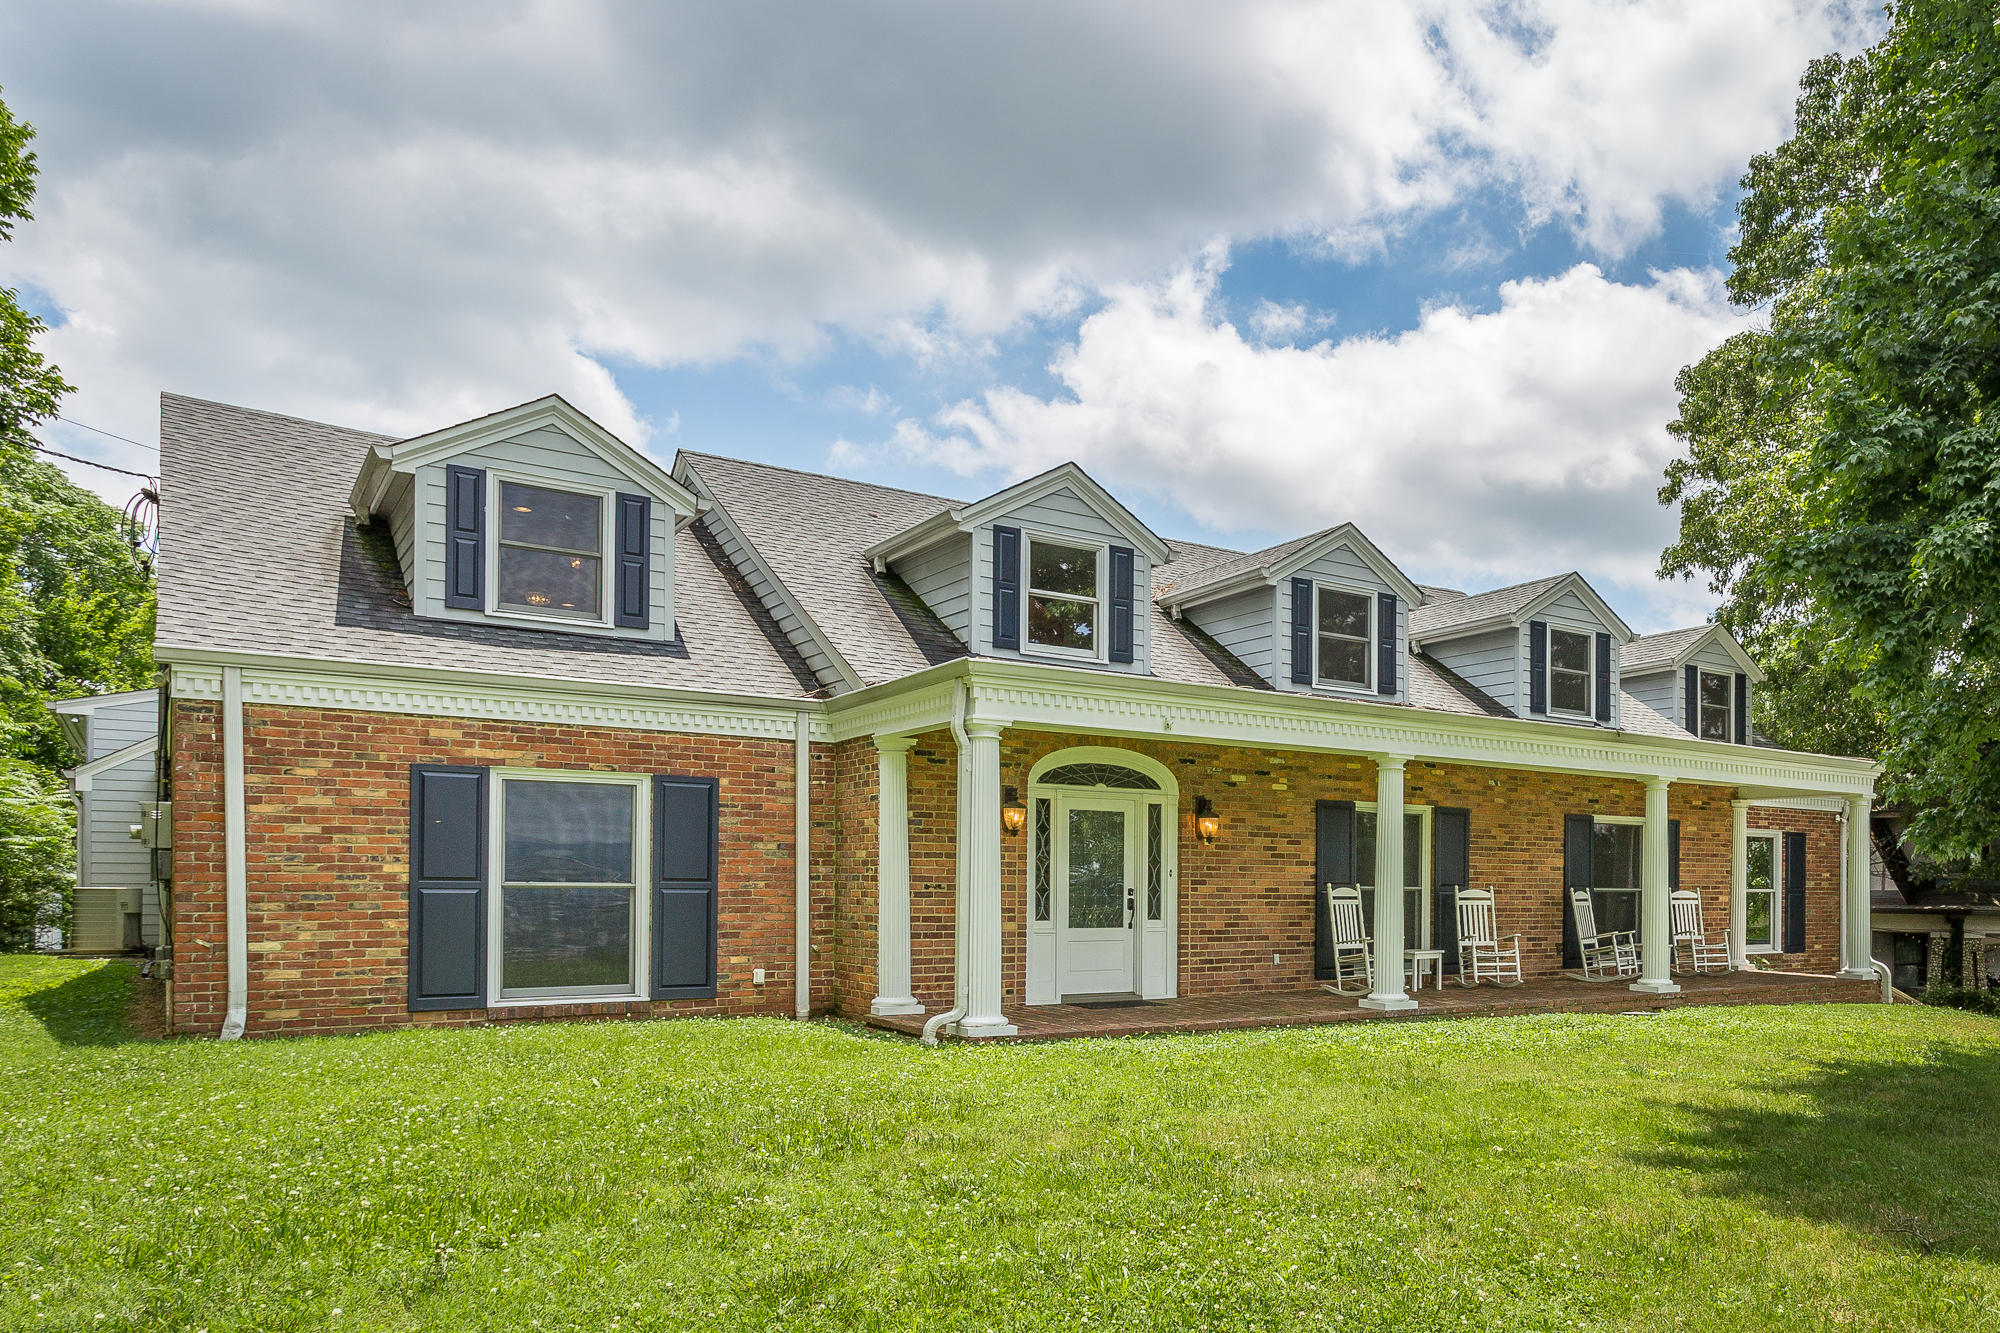 174 N Crest  Rd, Chattanooga, Tennessee